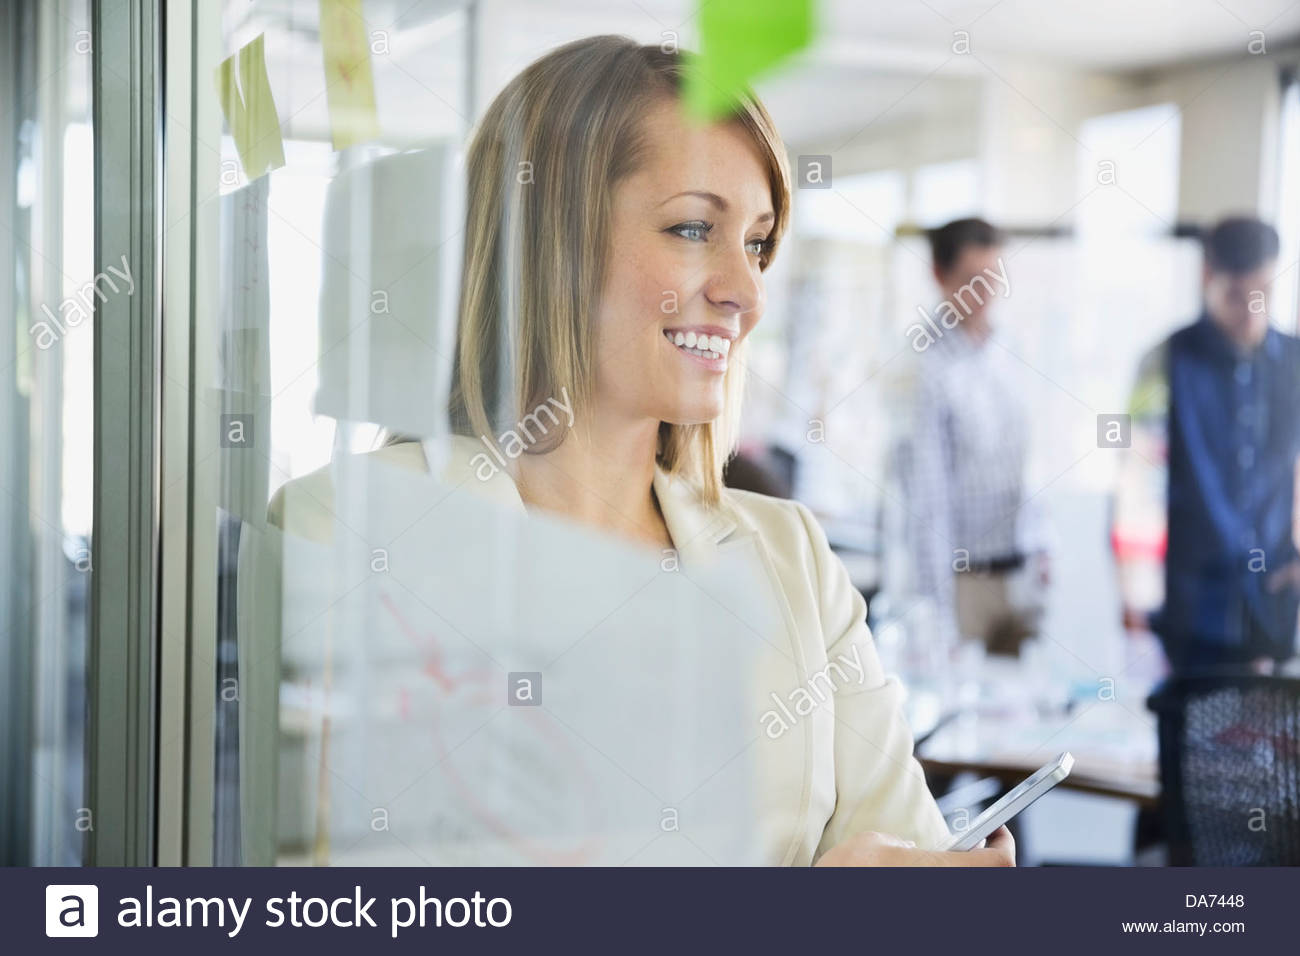 Businesswoman standing by glass wall in office - Stock Image